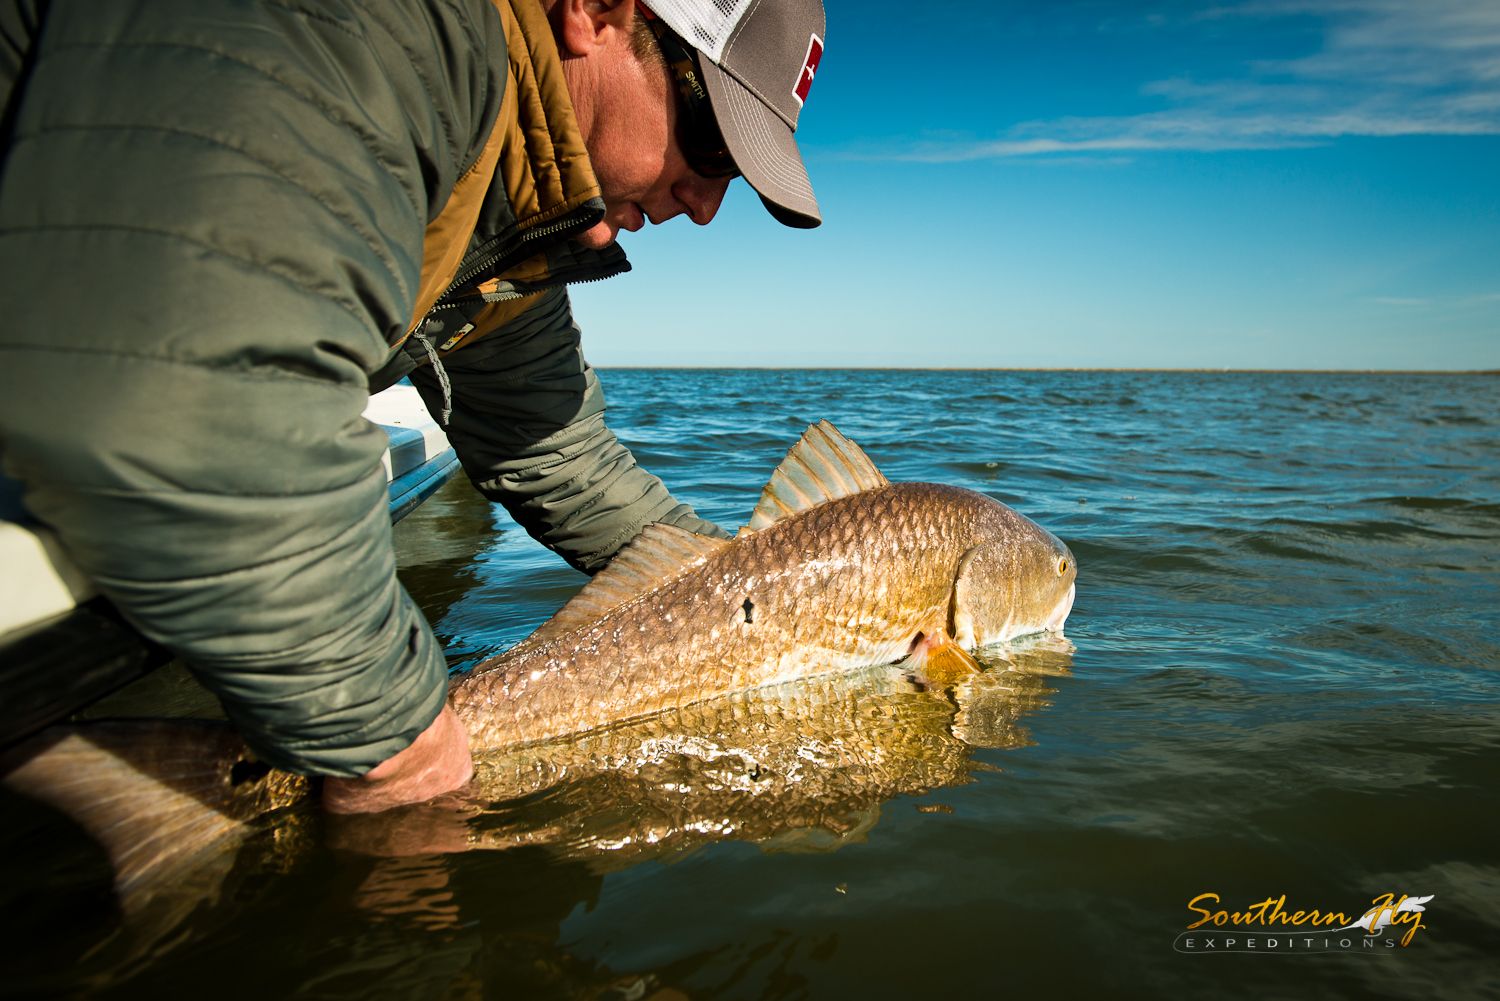 catch and release fly fishing and sight fishing with Southern Fly Expeditions